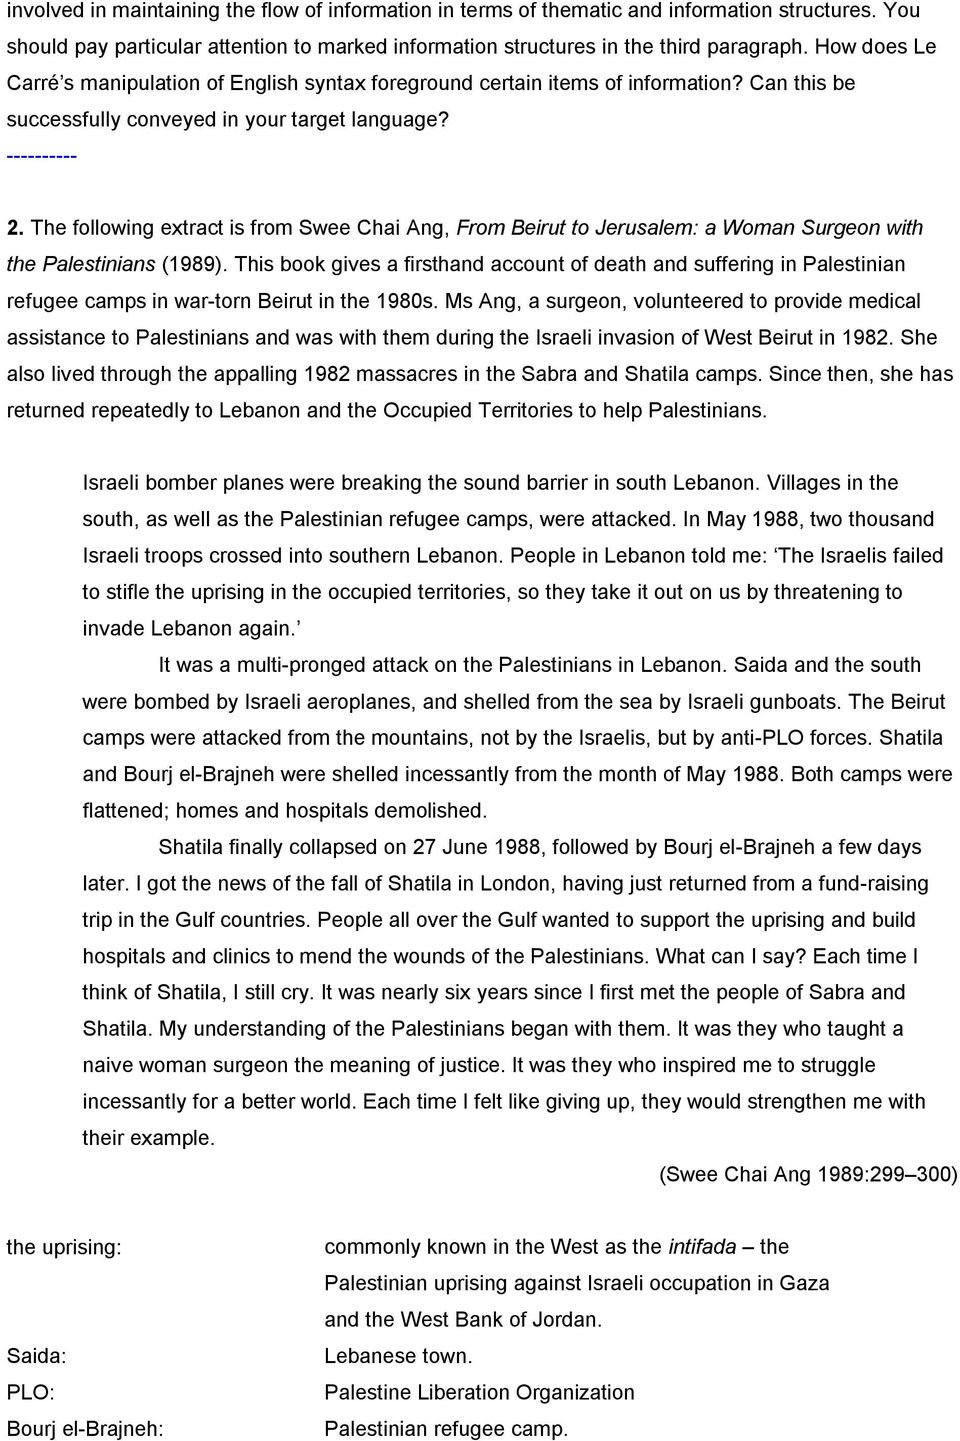 The following extract is from Swee Chai Ang, From Beirut to Jerusalem: a Woman Surgeon with the Palestinians (1989).